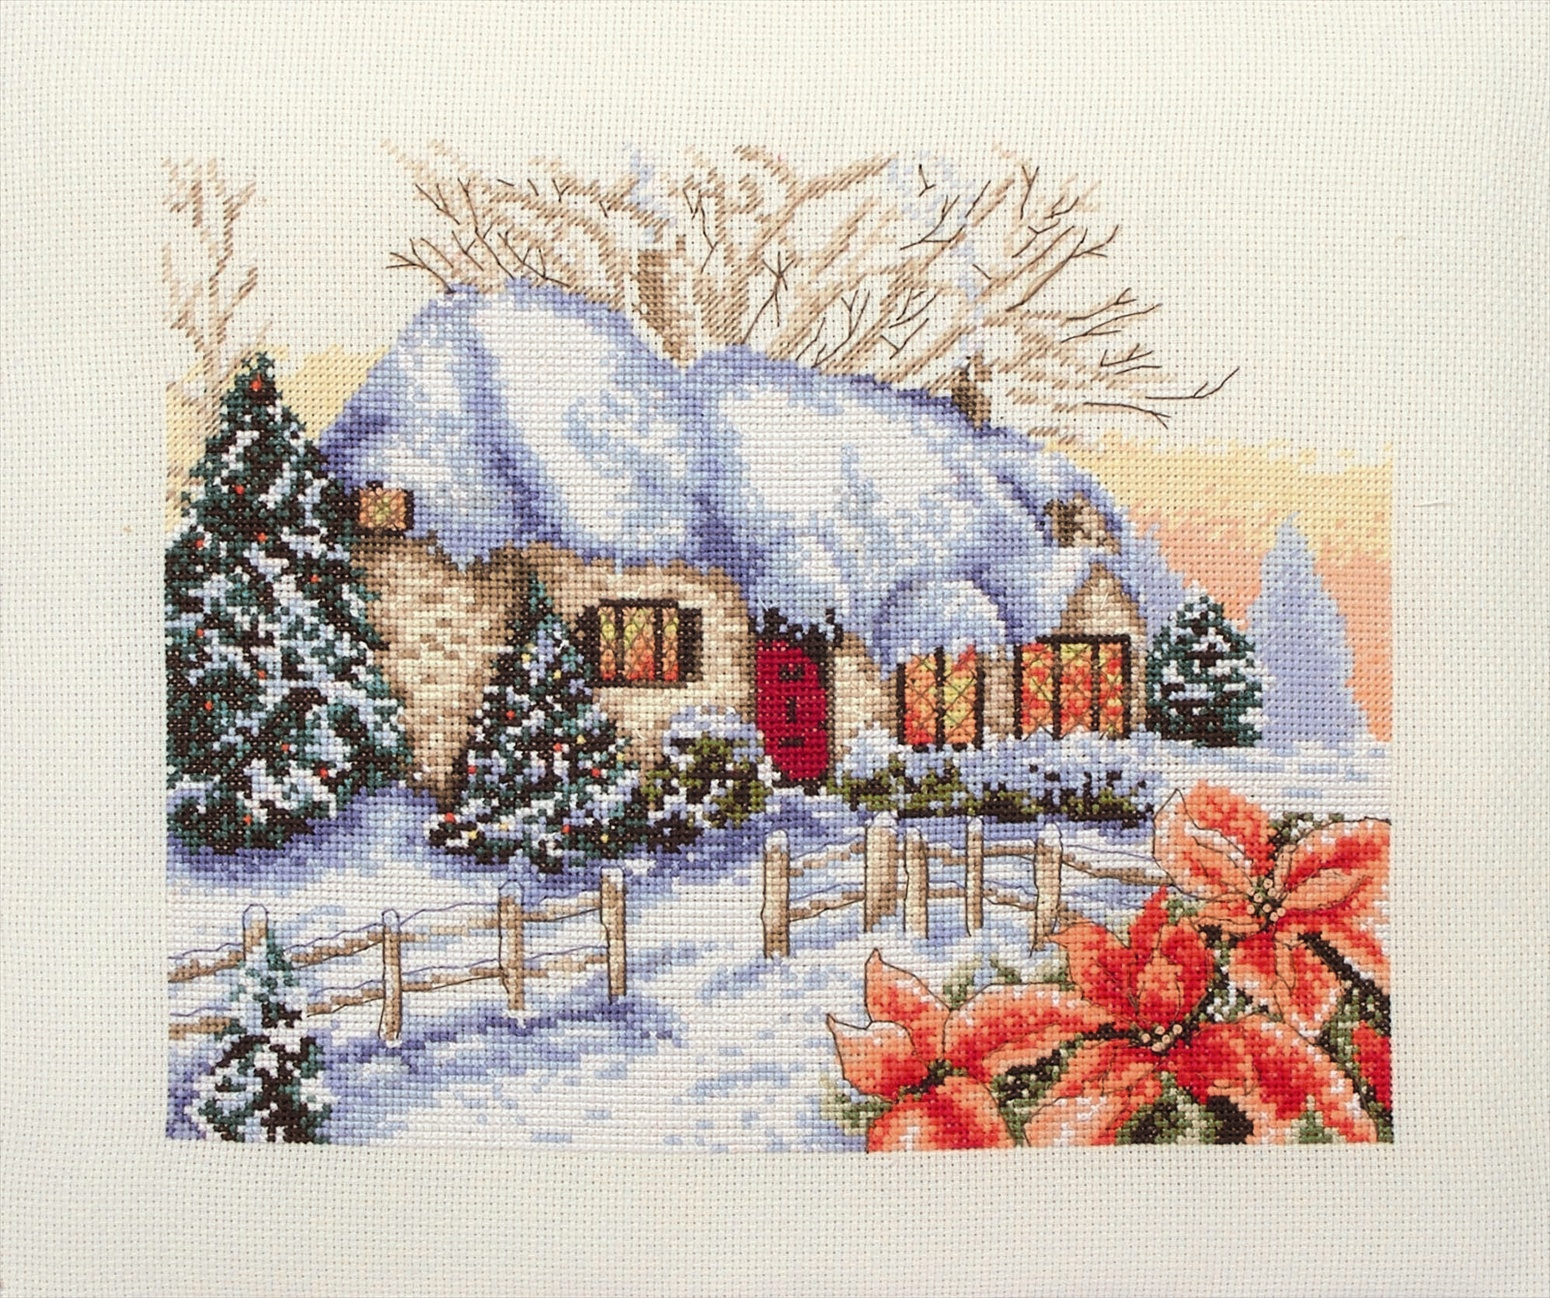 PCE594 Anchor Cross Stitch - Winter Cottage. Anchor. Набор для вышивания нитками